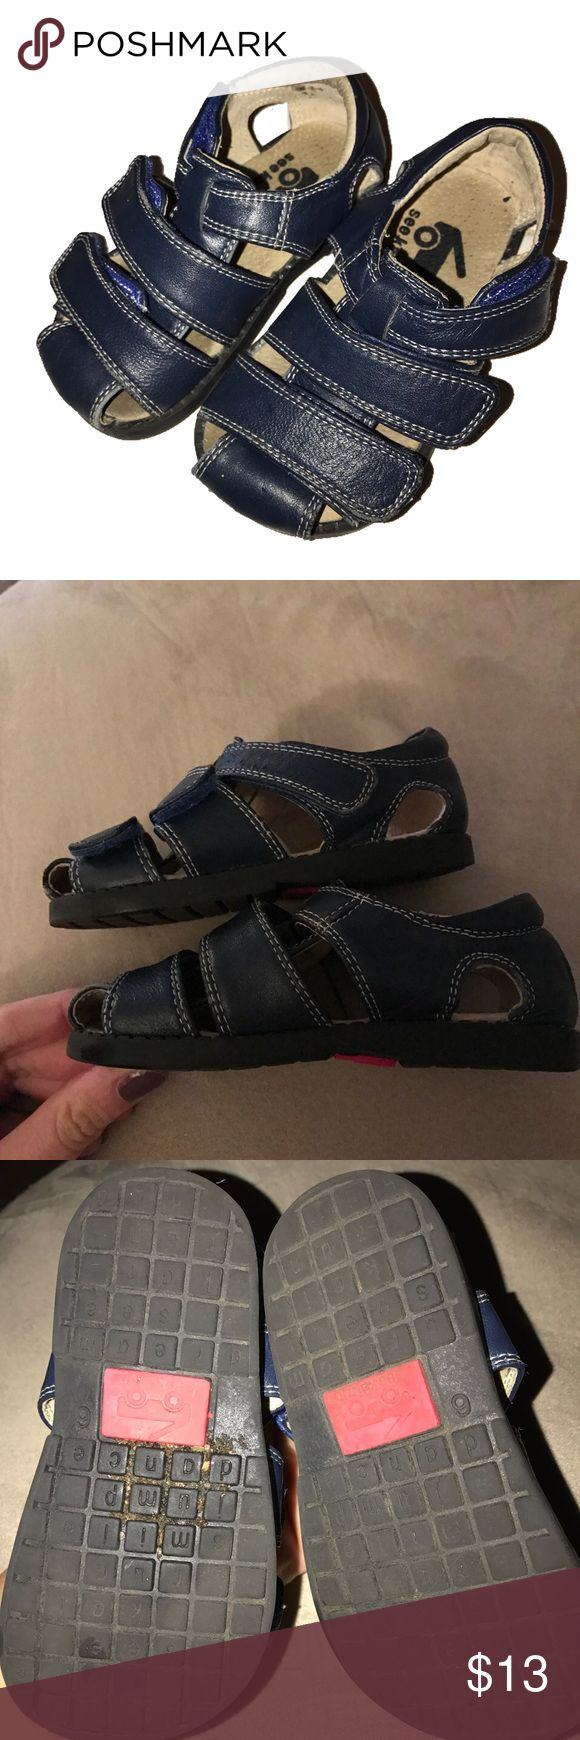 ⭐️See Kai Run Sz. 6 Navy Blue Velcro Sandals Shoes See Kai Run Size 6 Navy Blue Velcro Sandals Shoes. In great condition except for dirty bottoms and one spot inside of shoes by logo. I love that these shoes have 3 Velcro closures per shoe. This helps to adjust the fit perfectly to your little one. See Kai Run Shoes Sandals & Flip Flops